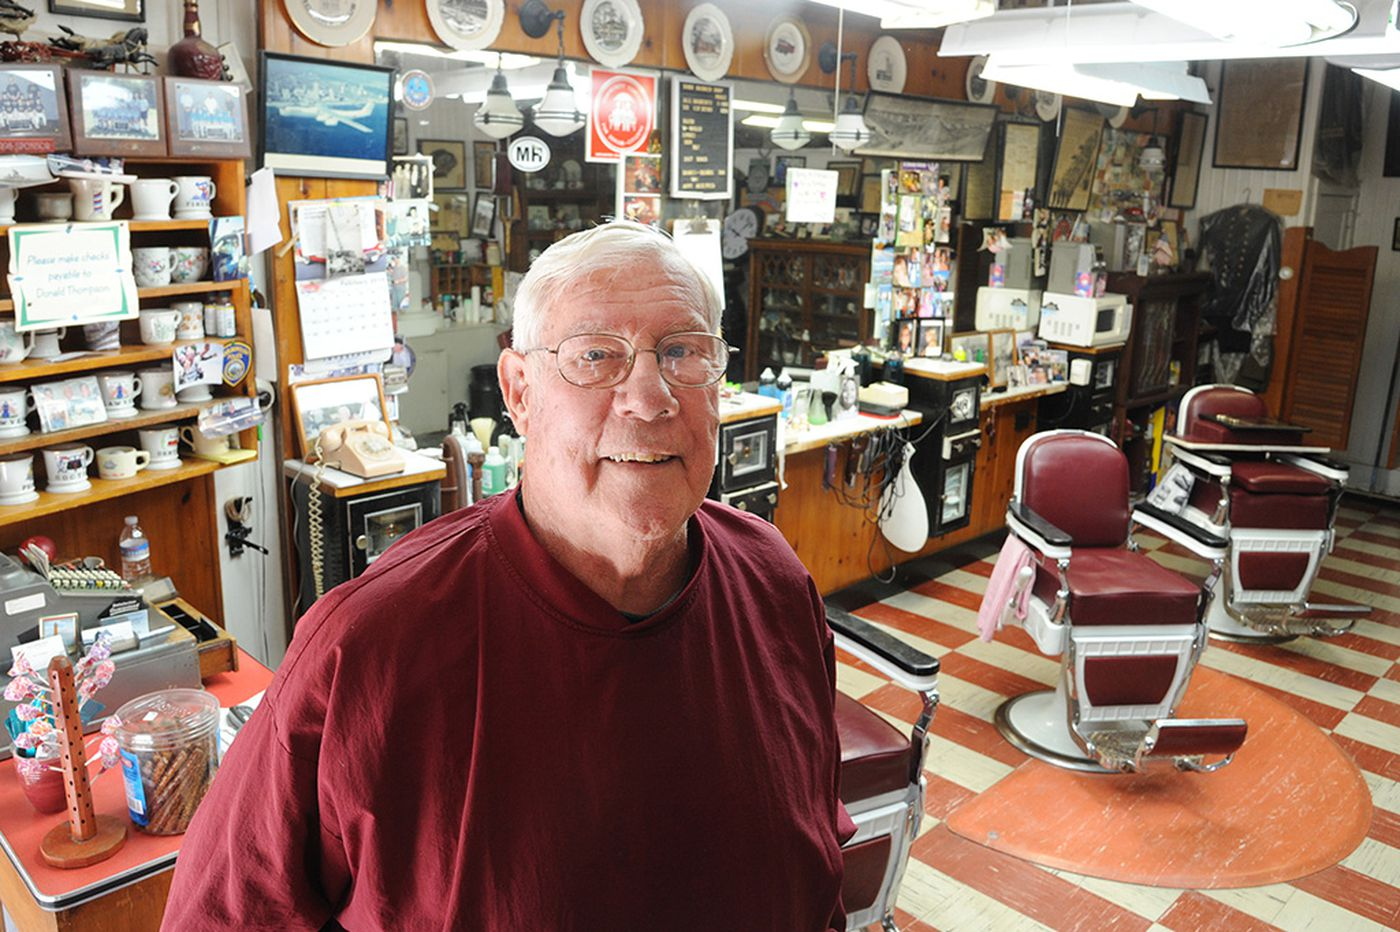 N.J. barber: 6 decades of 'treating people right'